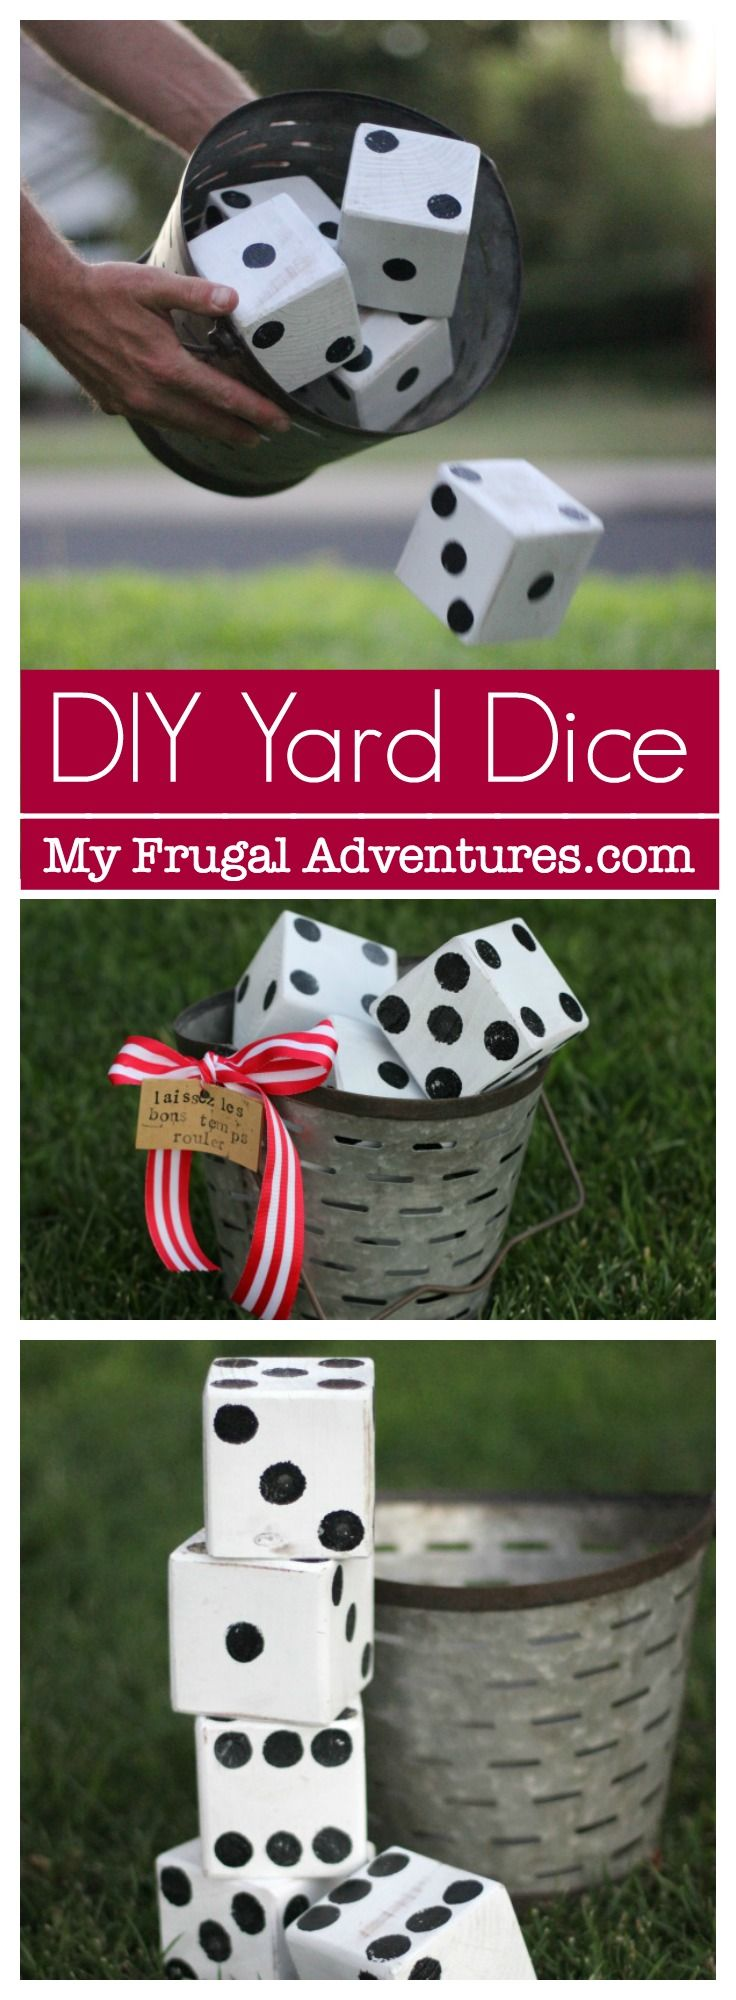 Super simple DIY lawn dice.  Such a fun activity for outdoor games or entertaining and parties. Perfect housewarming gift idea.  We love these for making math practice a bit more fun.